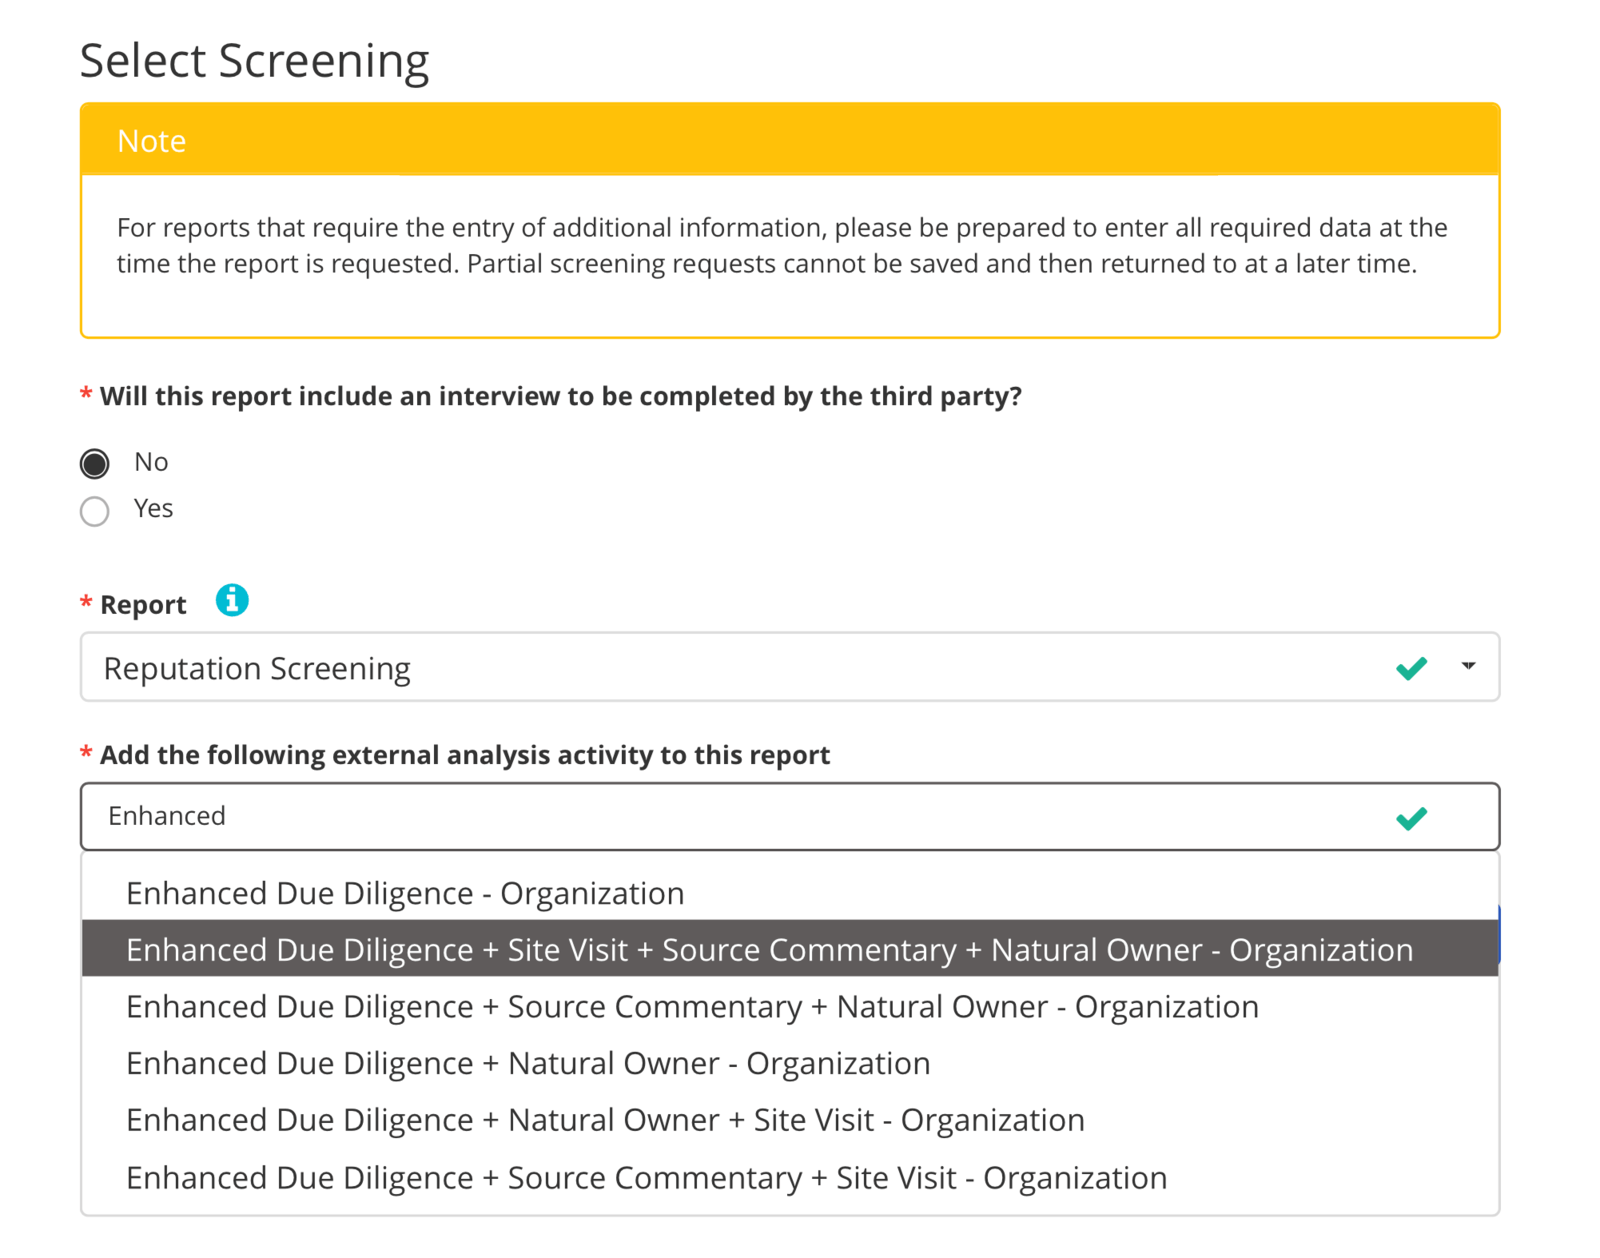 Select screening procedure